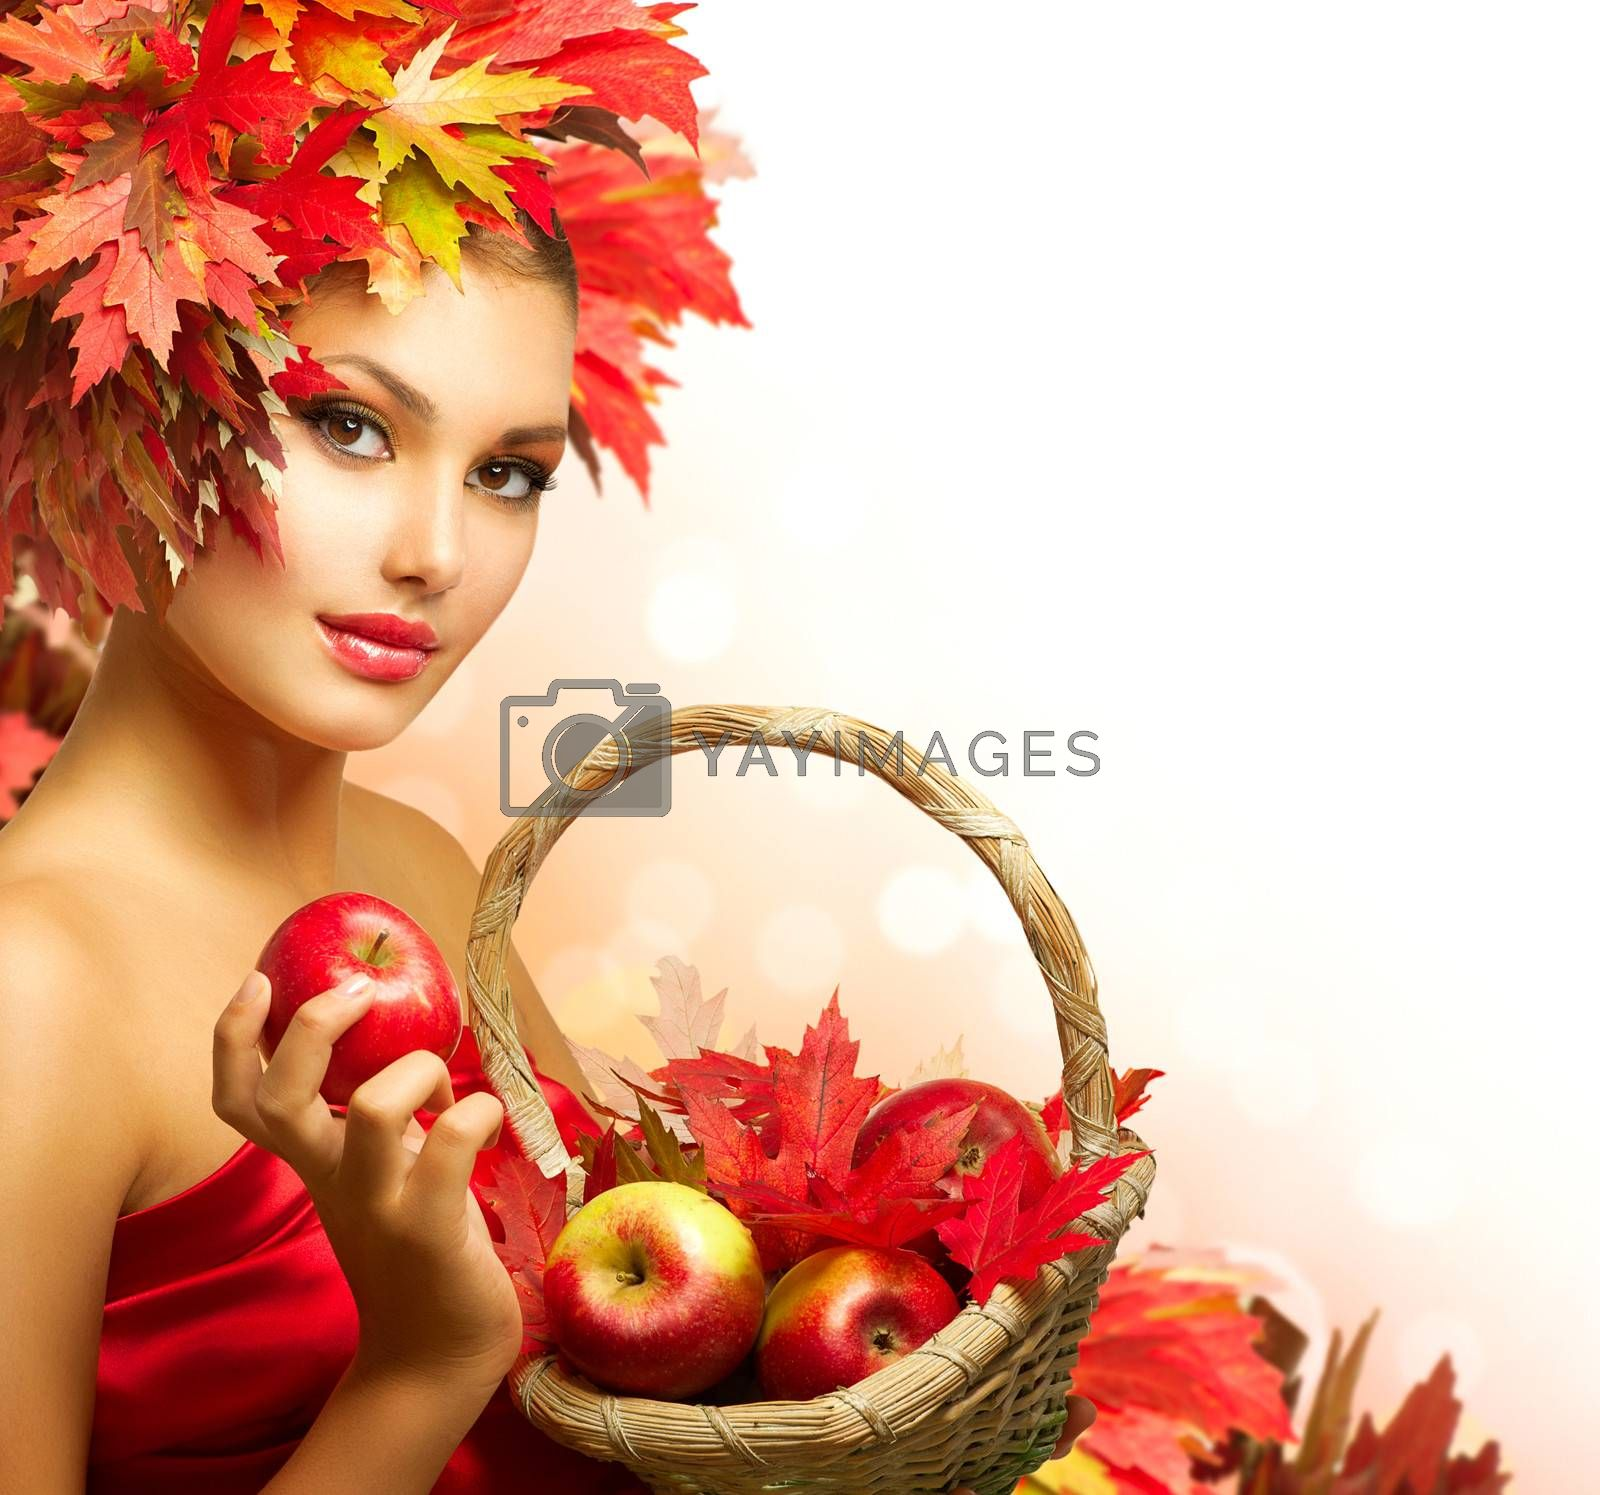 Beauty Autumn Woman with Ripe Red Organic Apples by SubbotinaA